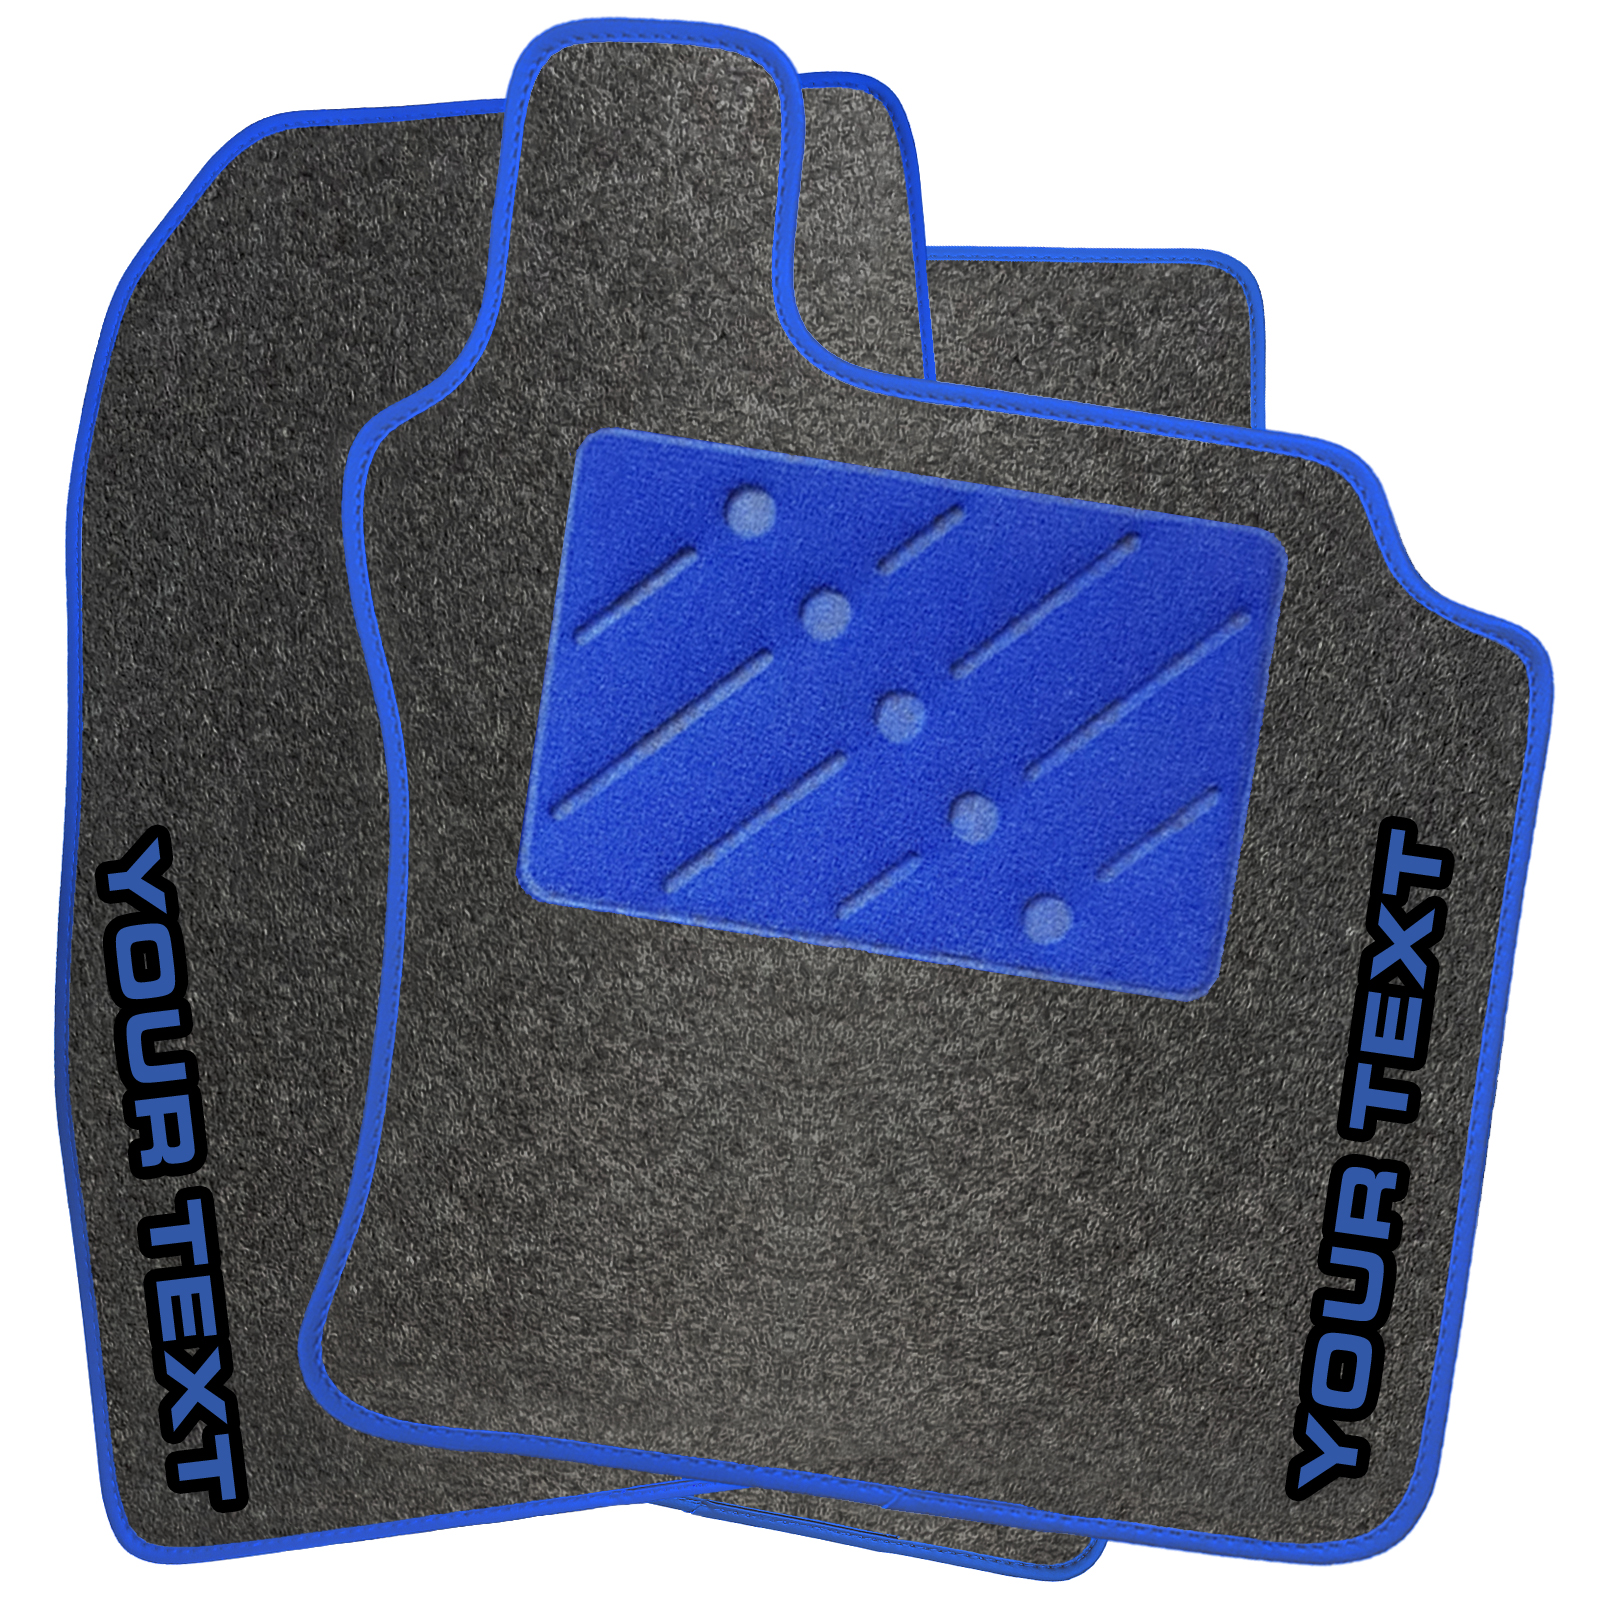 Looking for car mats on Audi 84